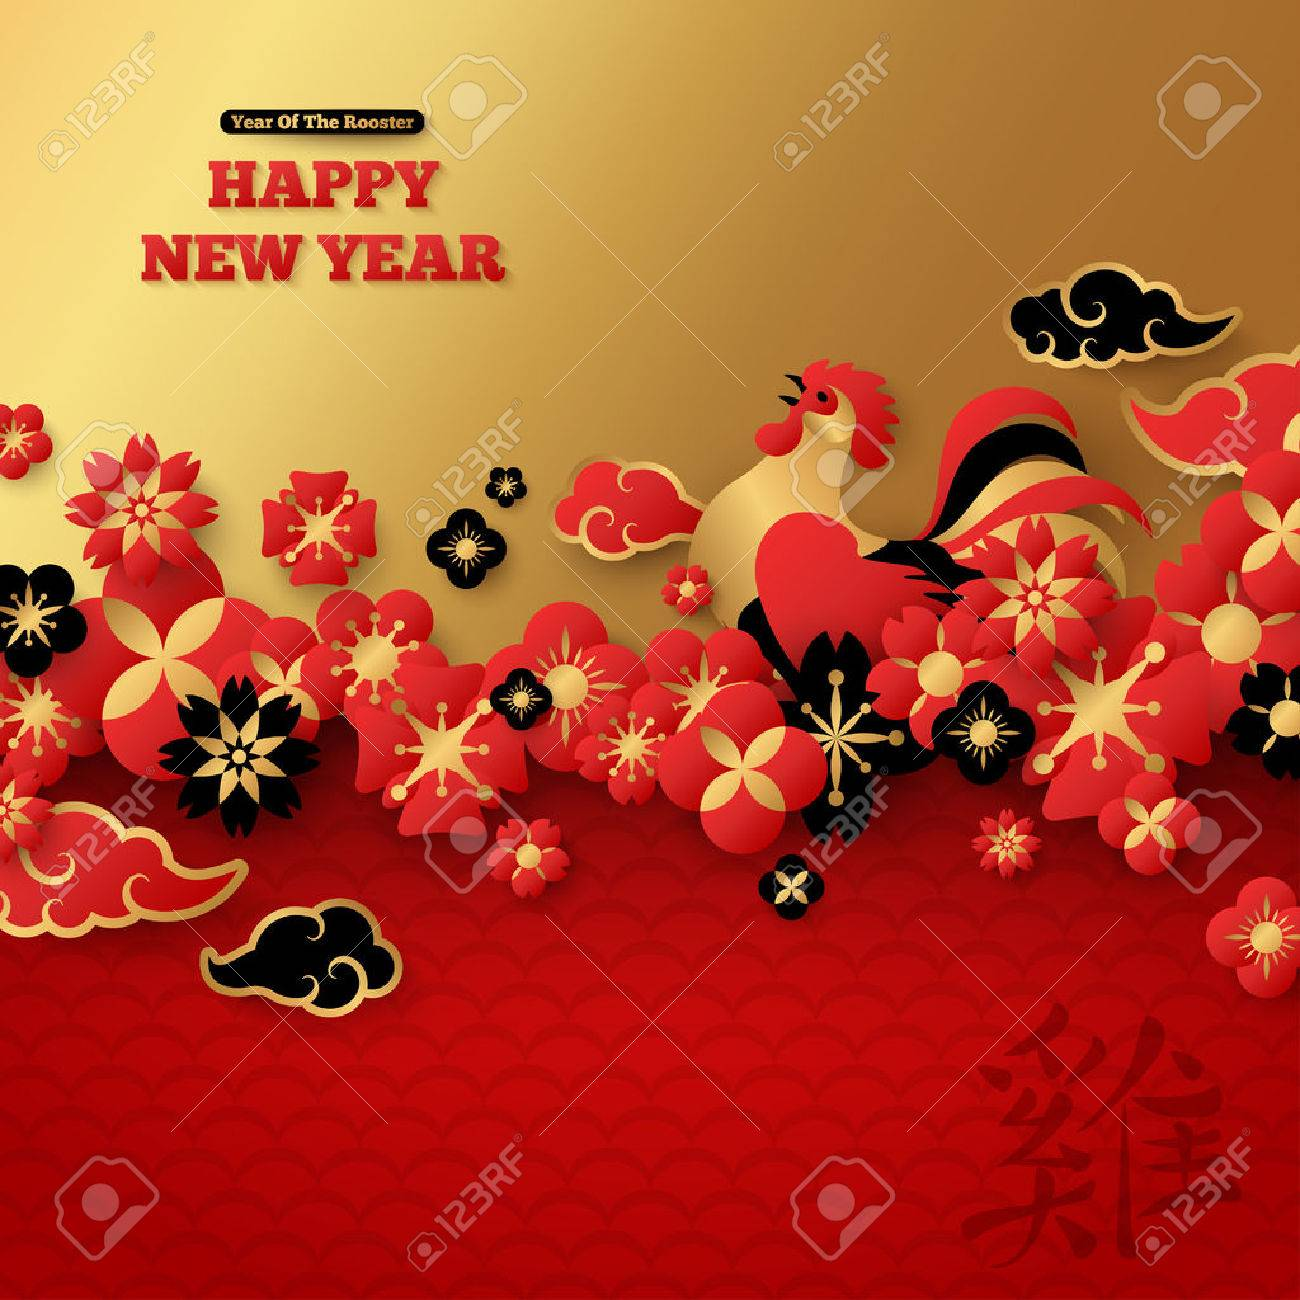 2017 chinese new year greeting card with floral border and crowing rooster stock vector